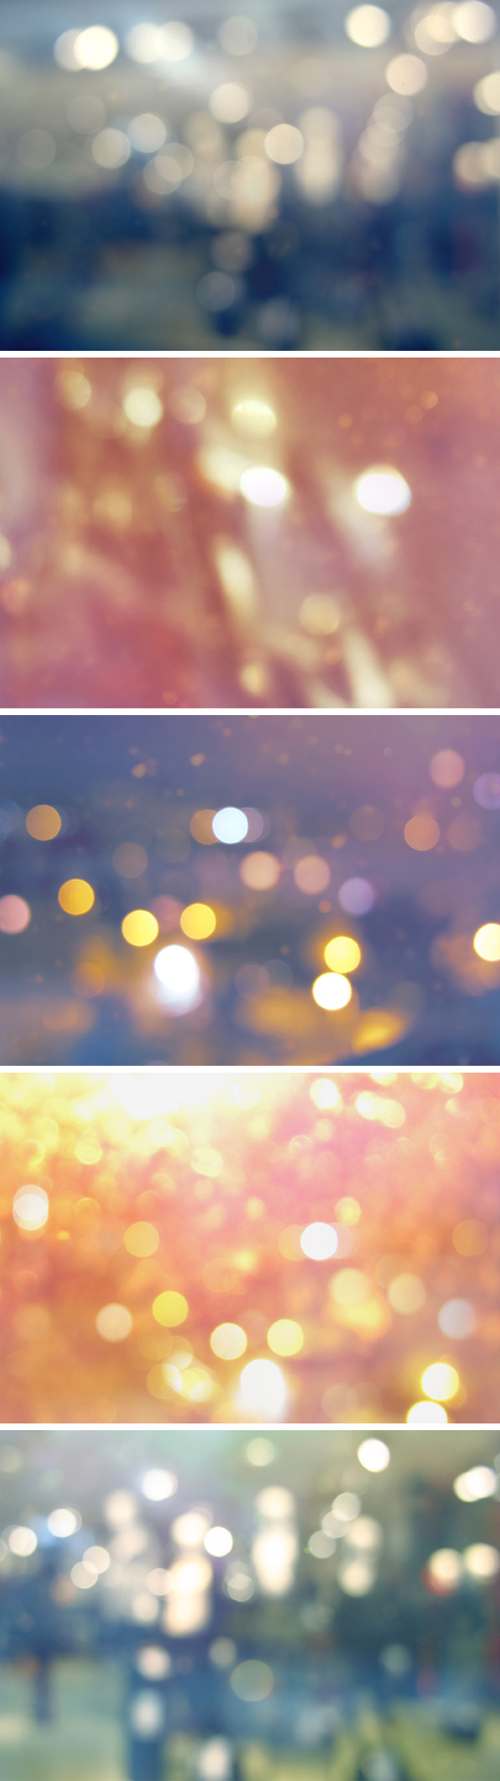 Bokeh-free-high resolution-grunge-vintage-textures-backgrounds